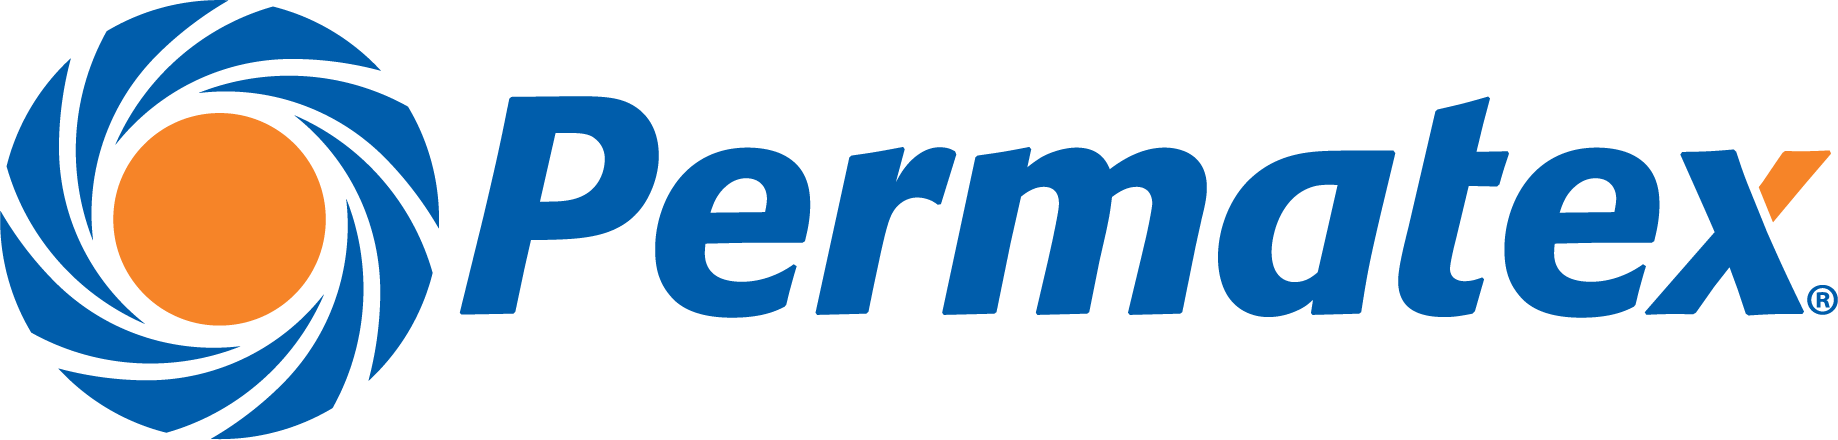 Image result for PERMATEX LOGO